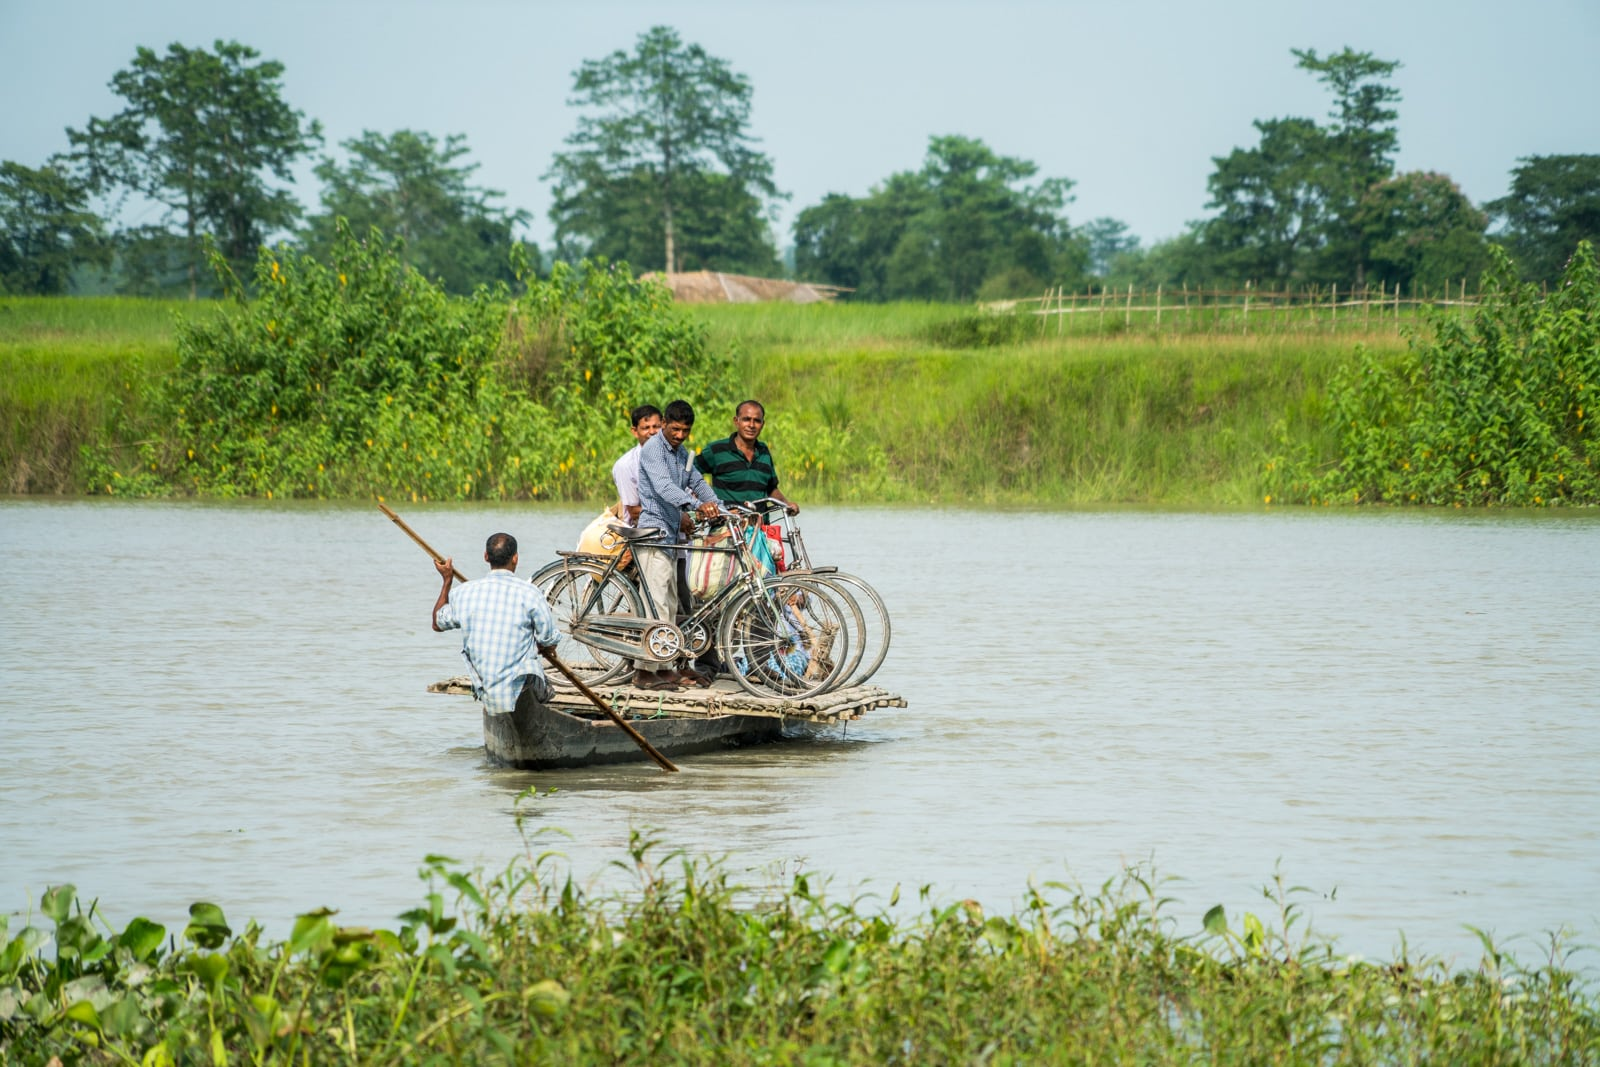 Small ferry for cyclists in Majuli river island in Assam, India - Lost With Purpose travel blog